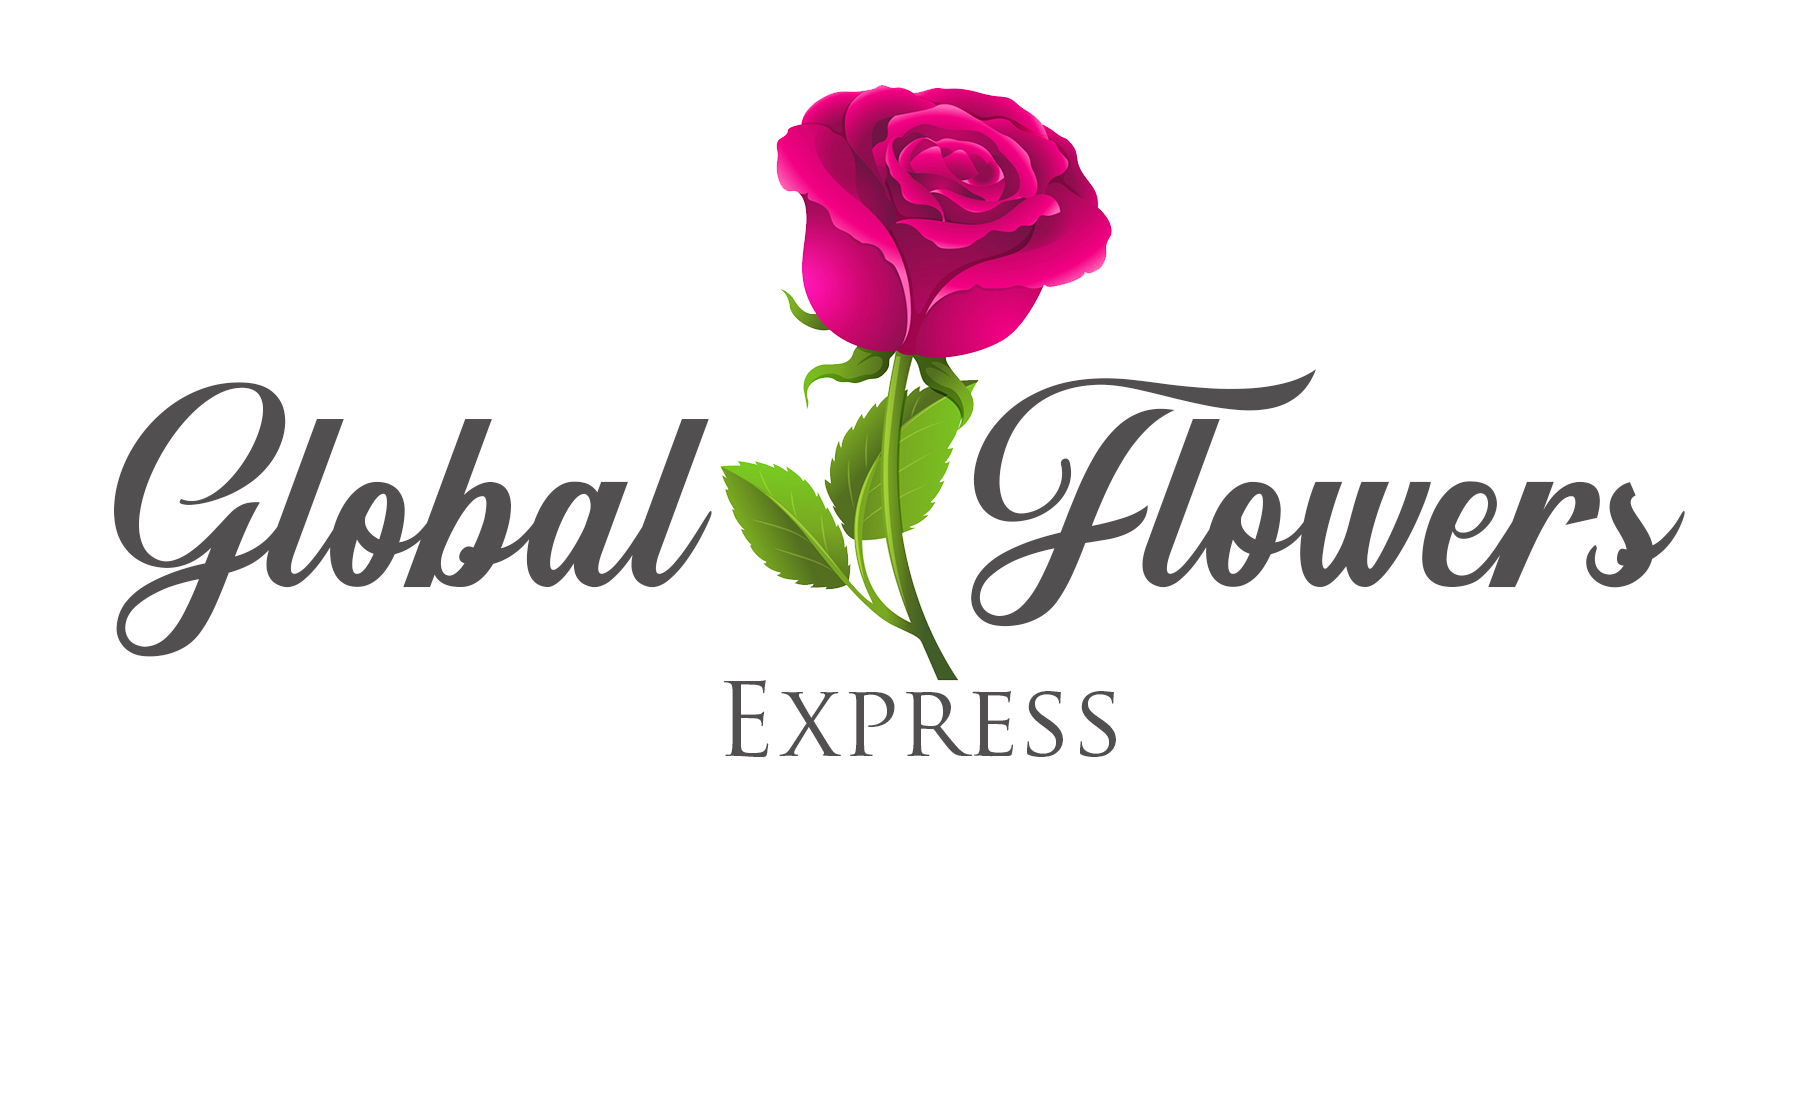 Global Flowers Express